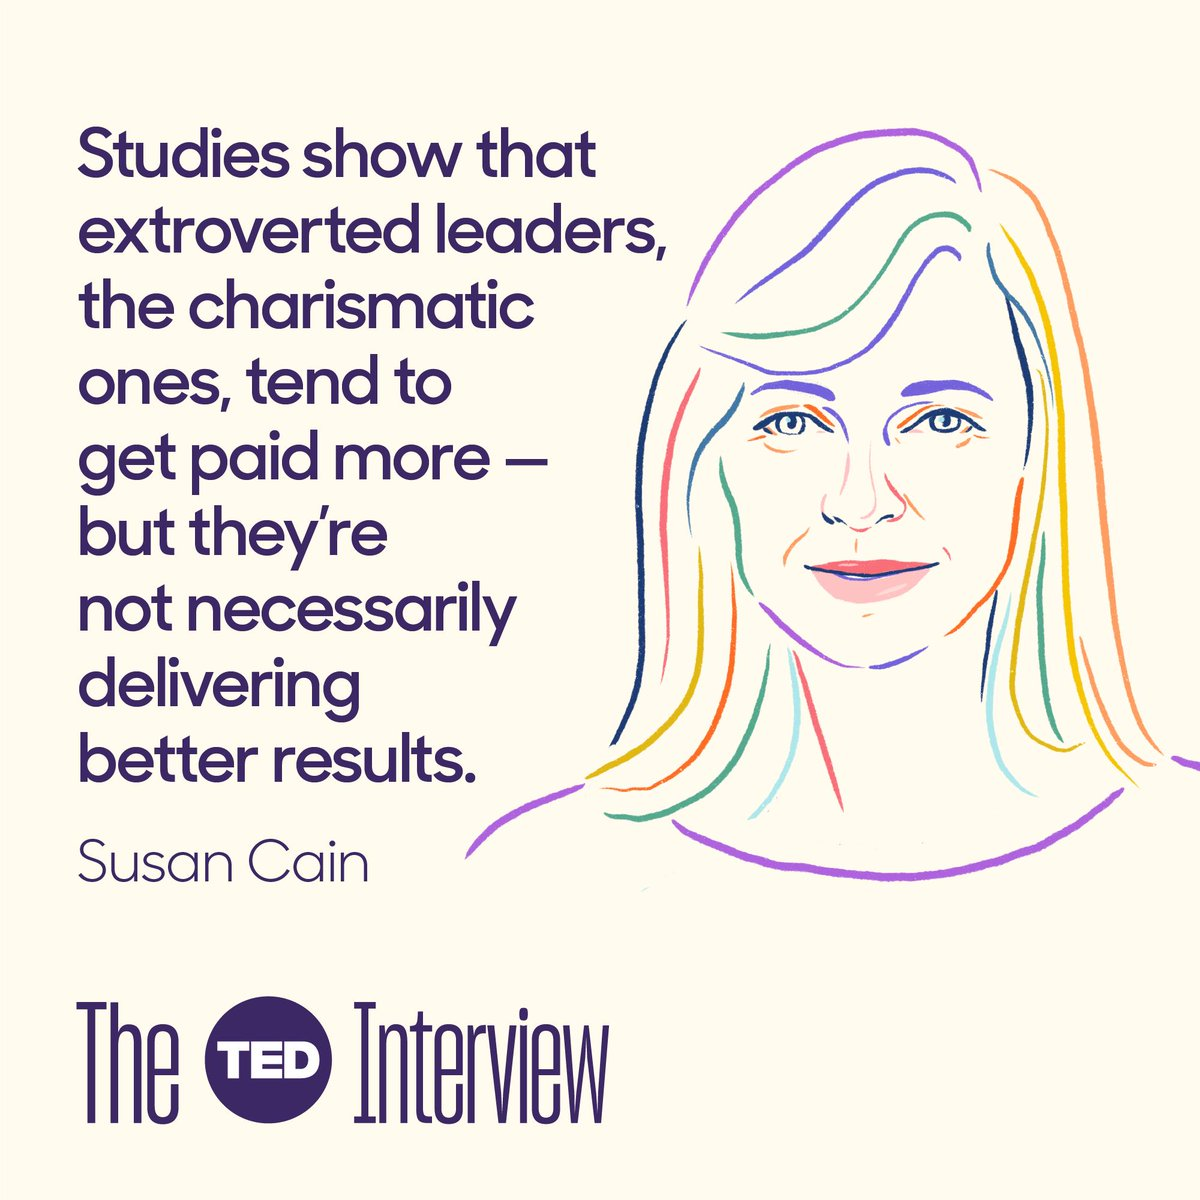 Announcing: the release of my interview with @TEDchris on #TheTEDInterview podcast! A great honor, it was. https://tedtalks.social/2IDnEyA